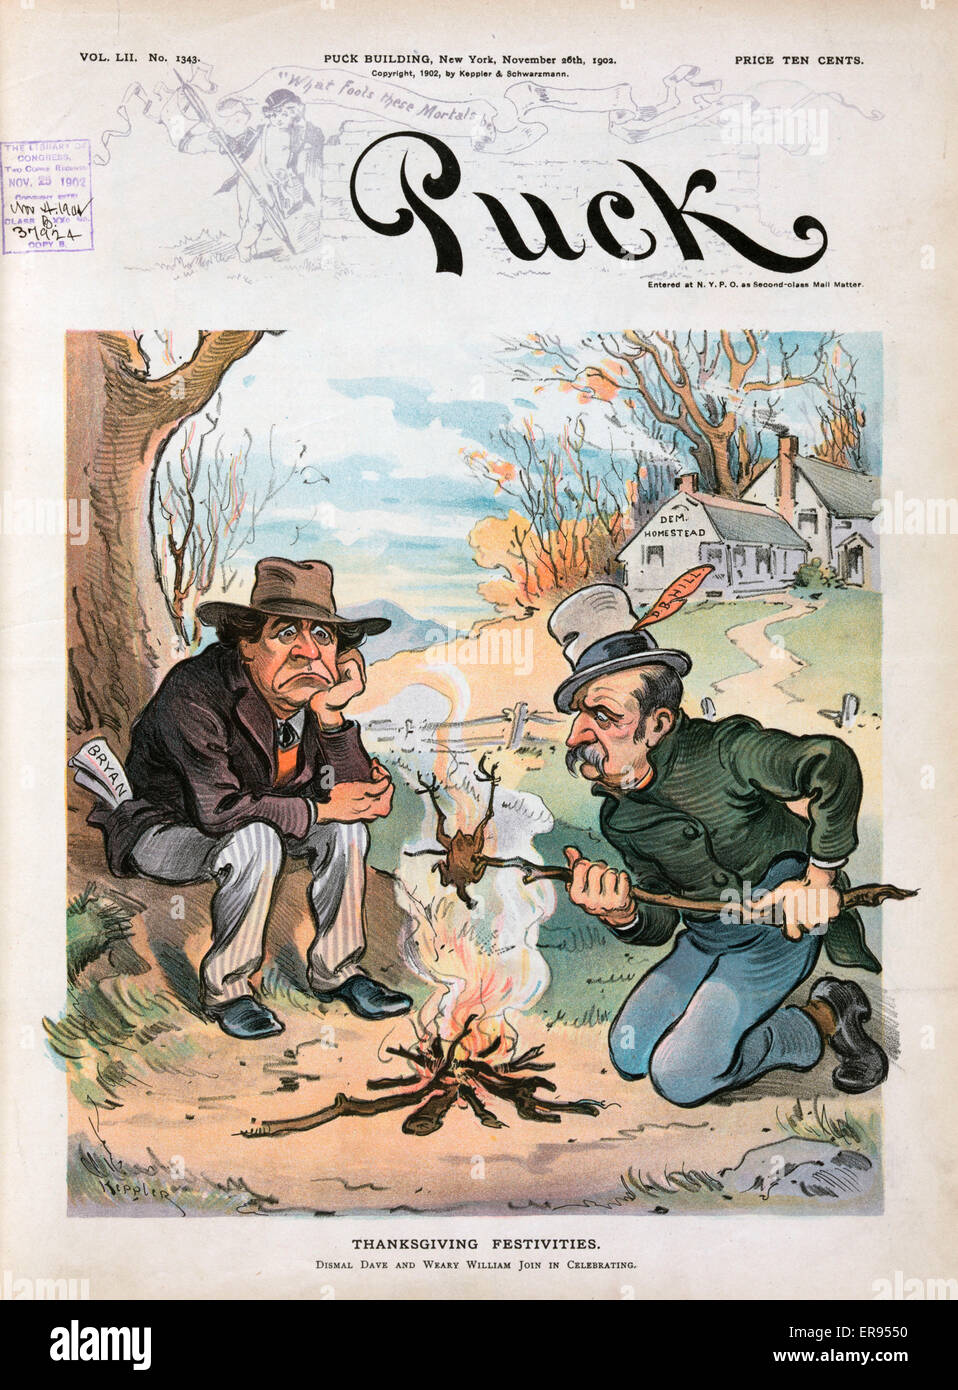 Thanksgiving festivities. Illustration shows William Jennings Bryan and David B. Hill roasting a bird over a campfire - Stock Image